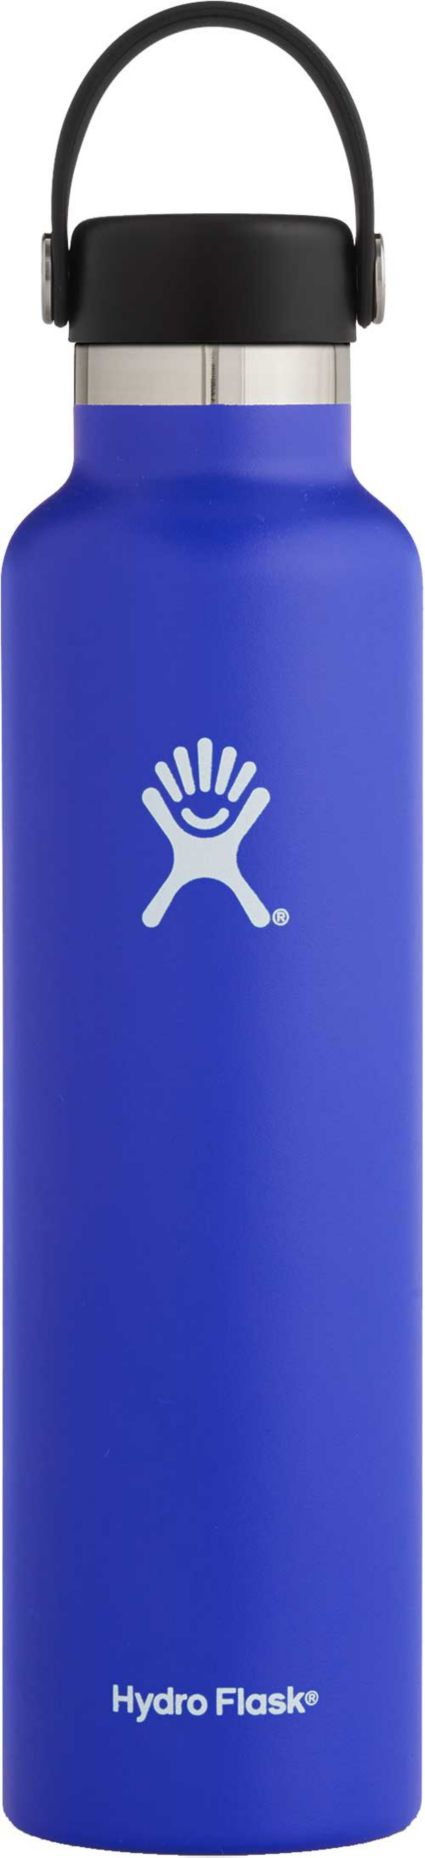 Hydro Flask 24 oz Standard Mouth Bottle